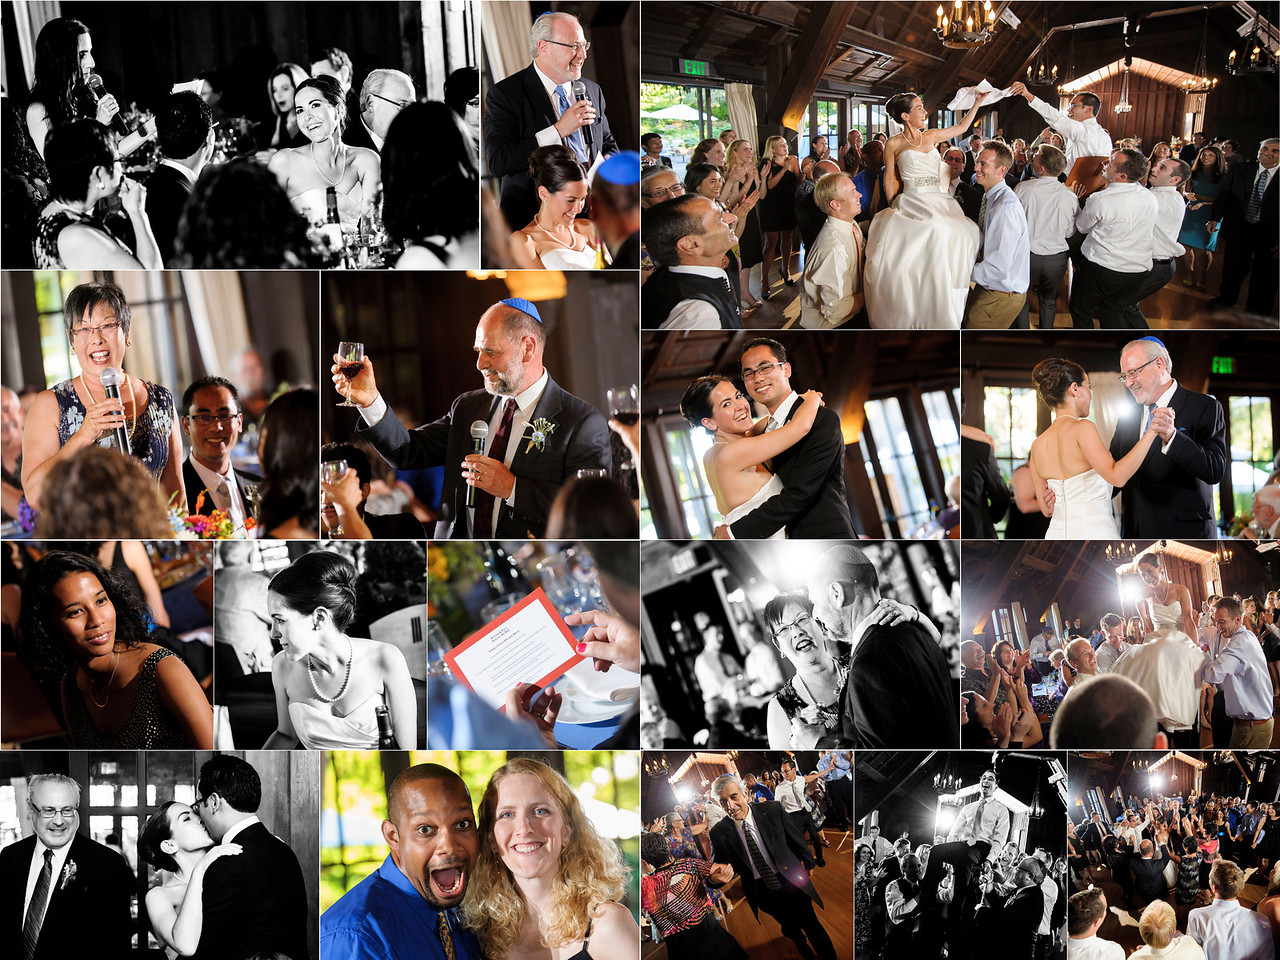 Alyssa_and_Paul_Wedding_Photography_4x6_Photo_Board_06